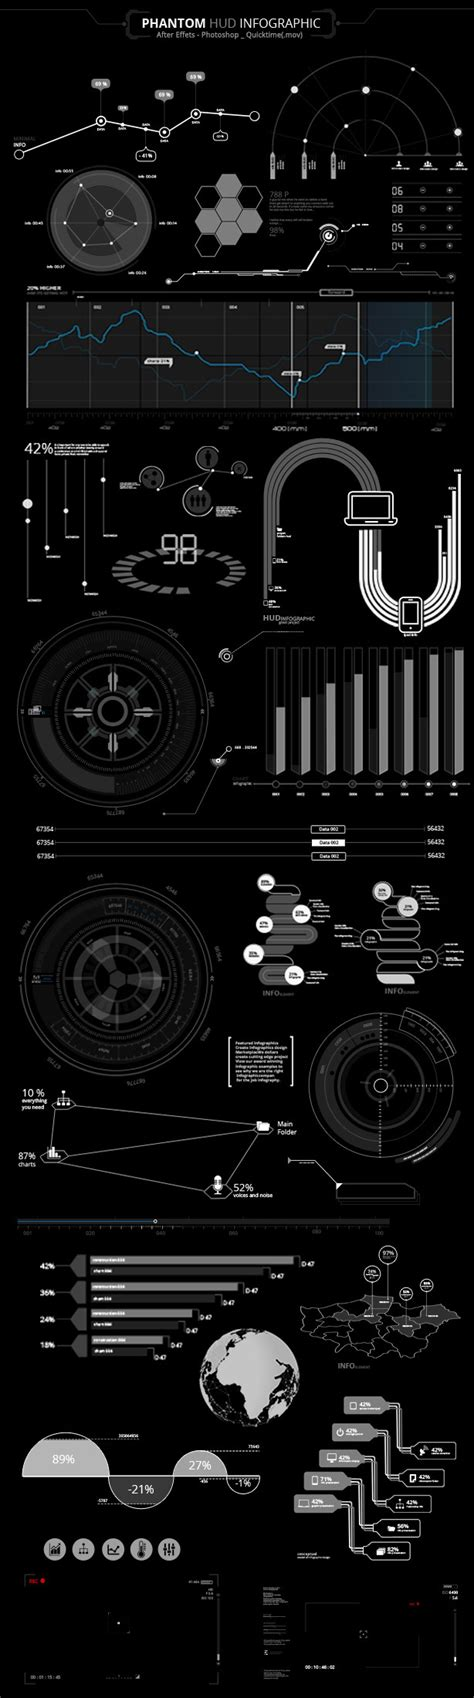 after effects template free phantom hud infographic motion graphics phantom hud infographic videohive